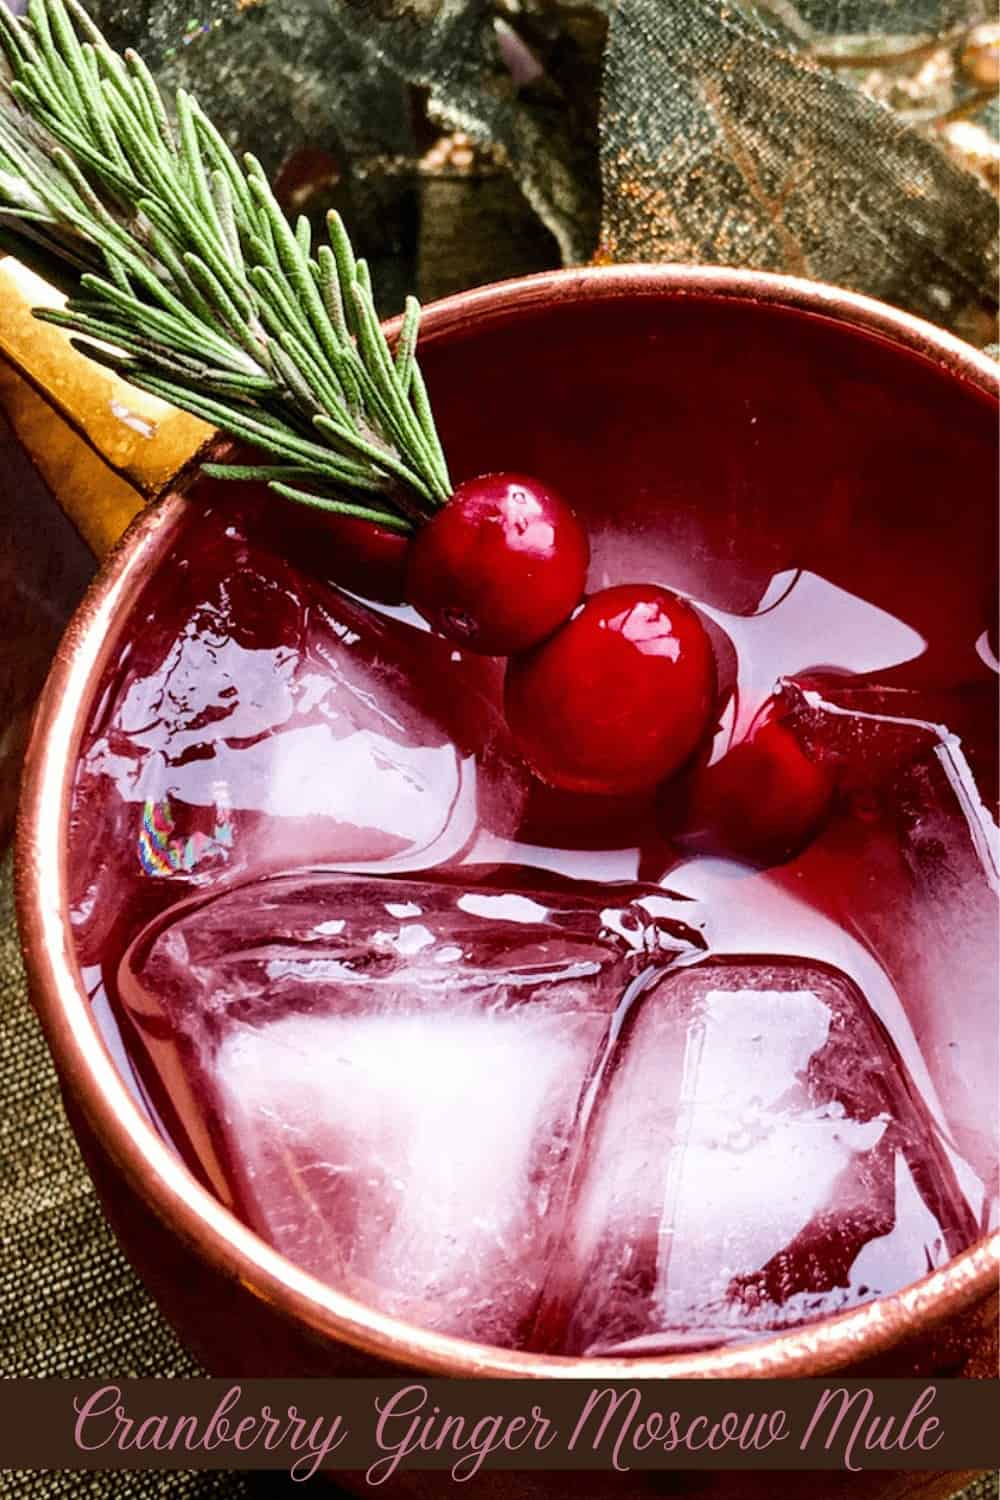 Sprig of Cranberry and rosemary